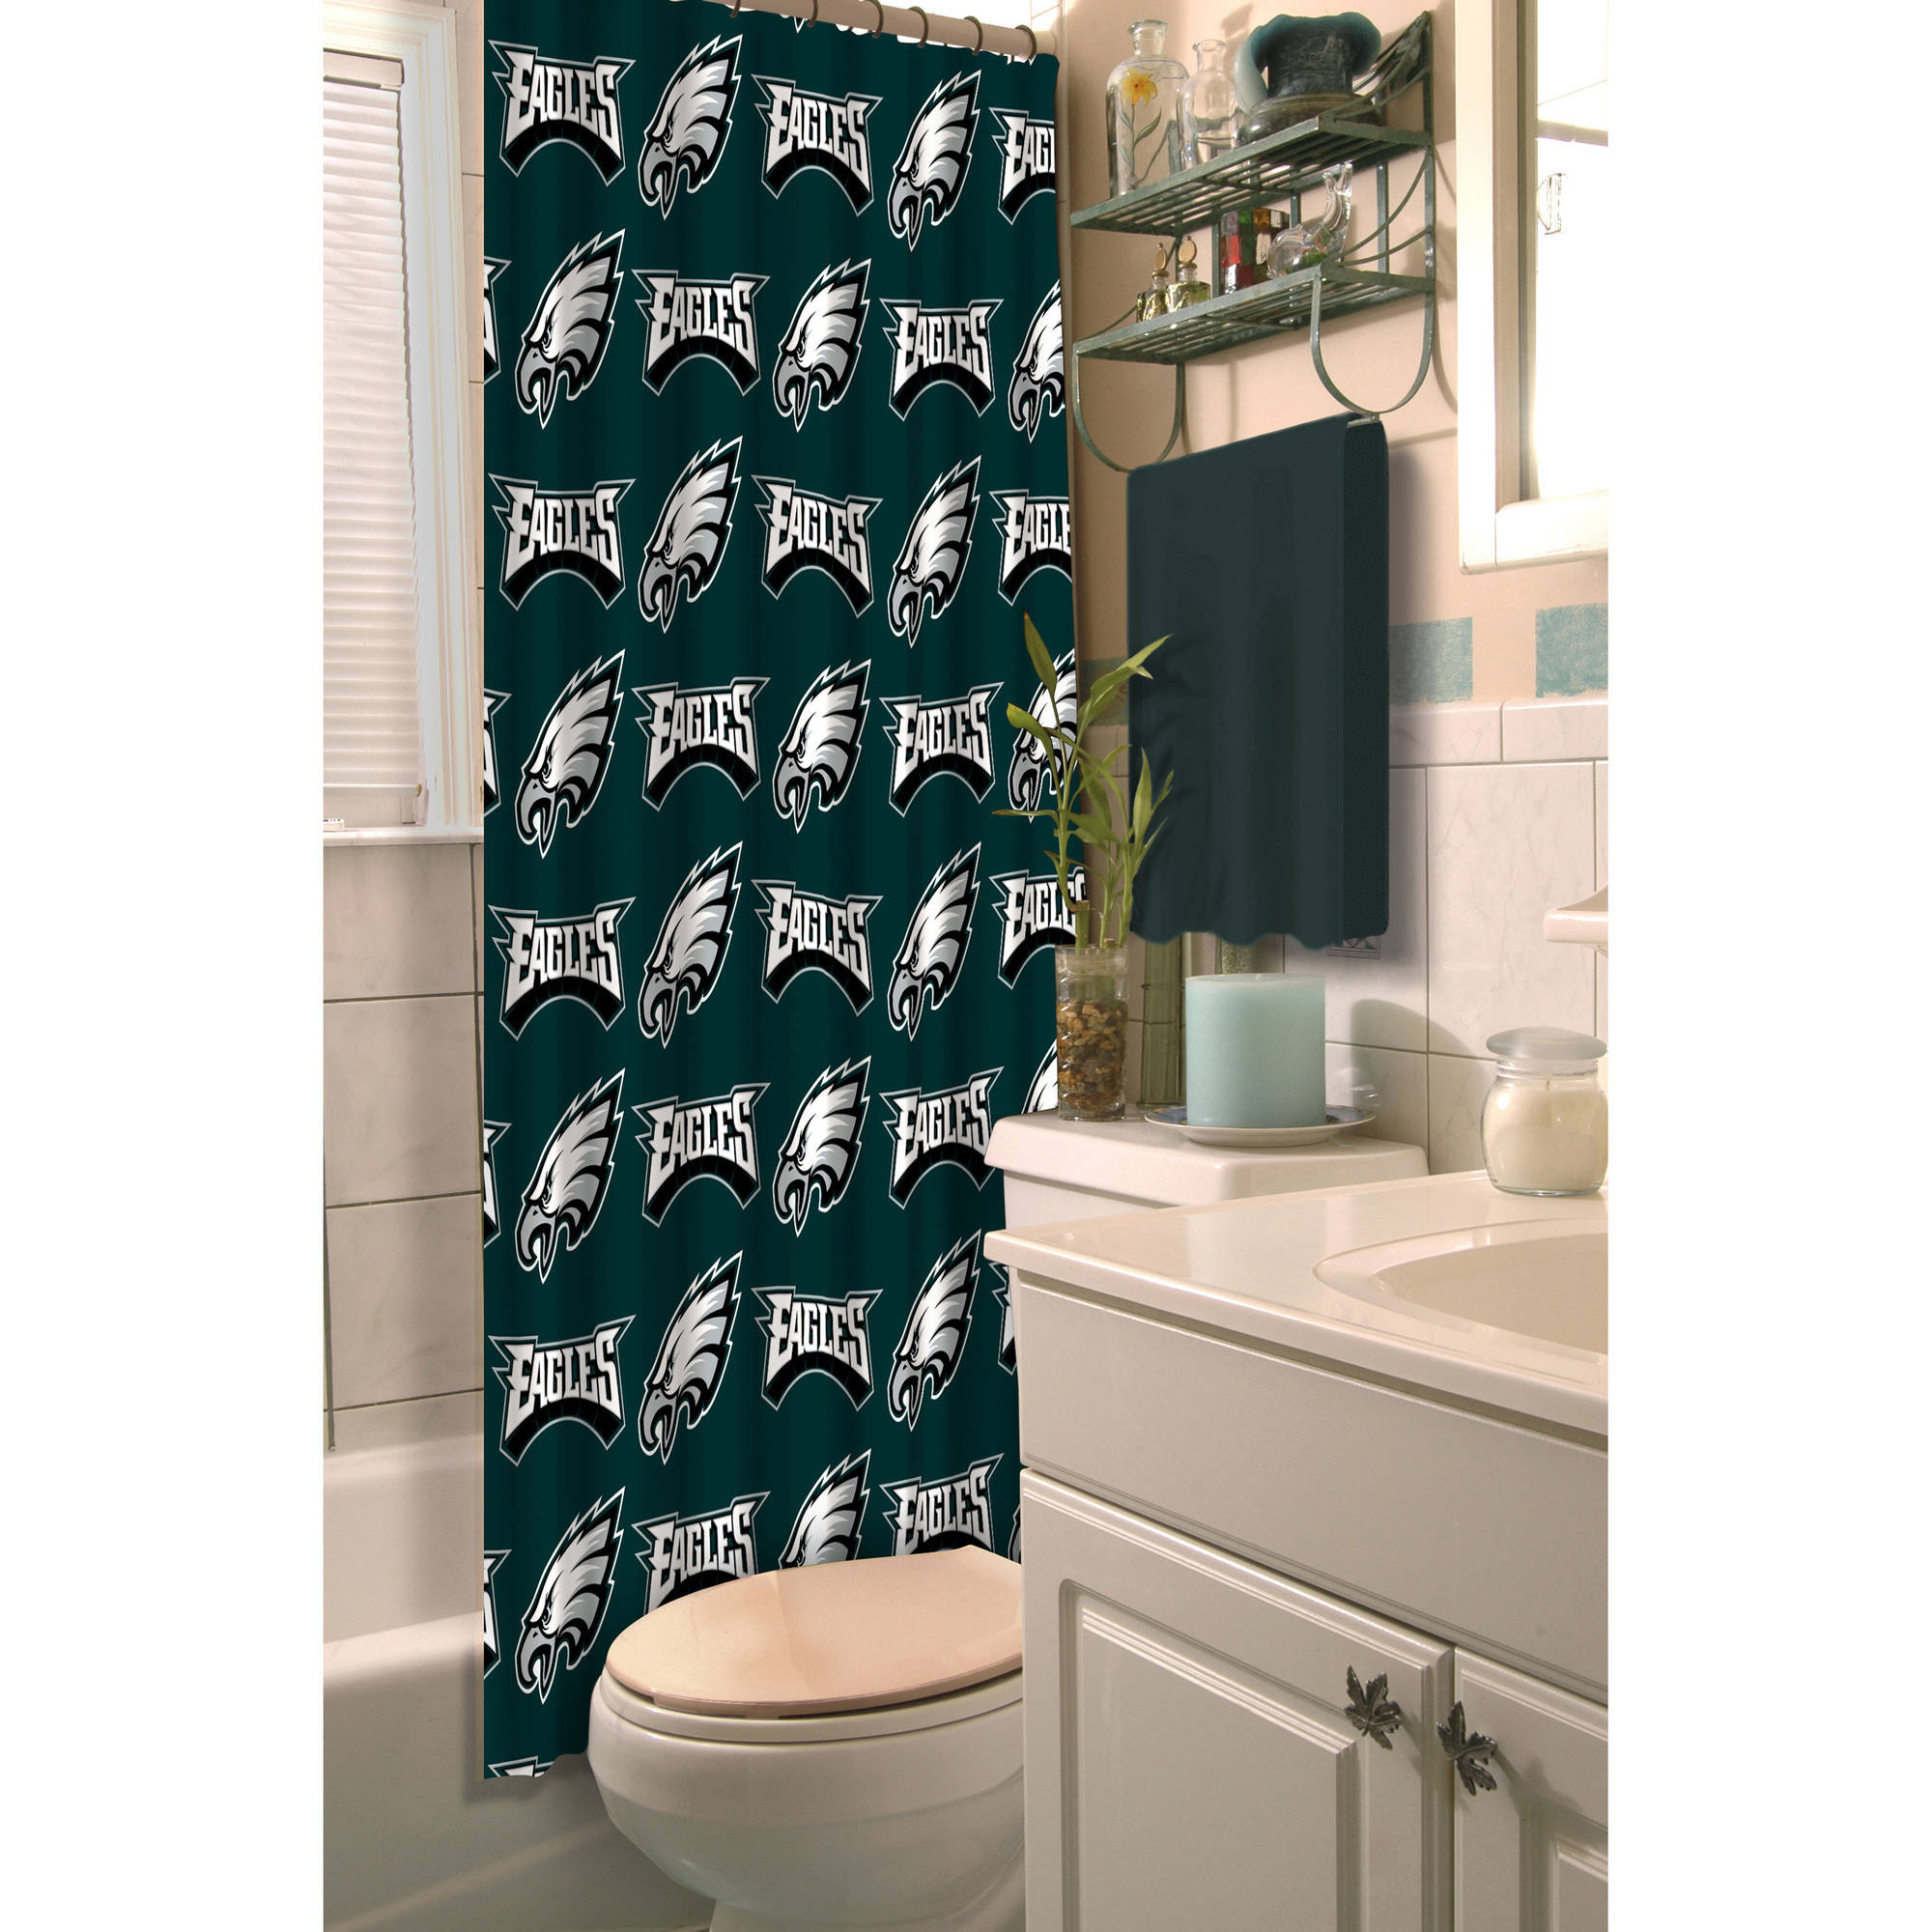 NFL Philadelphia Eagles Decorative Bath Collection - Shower ...